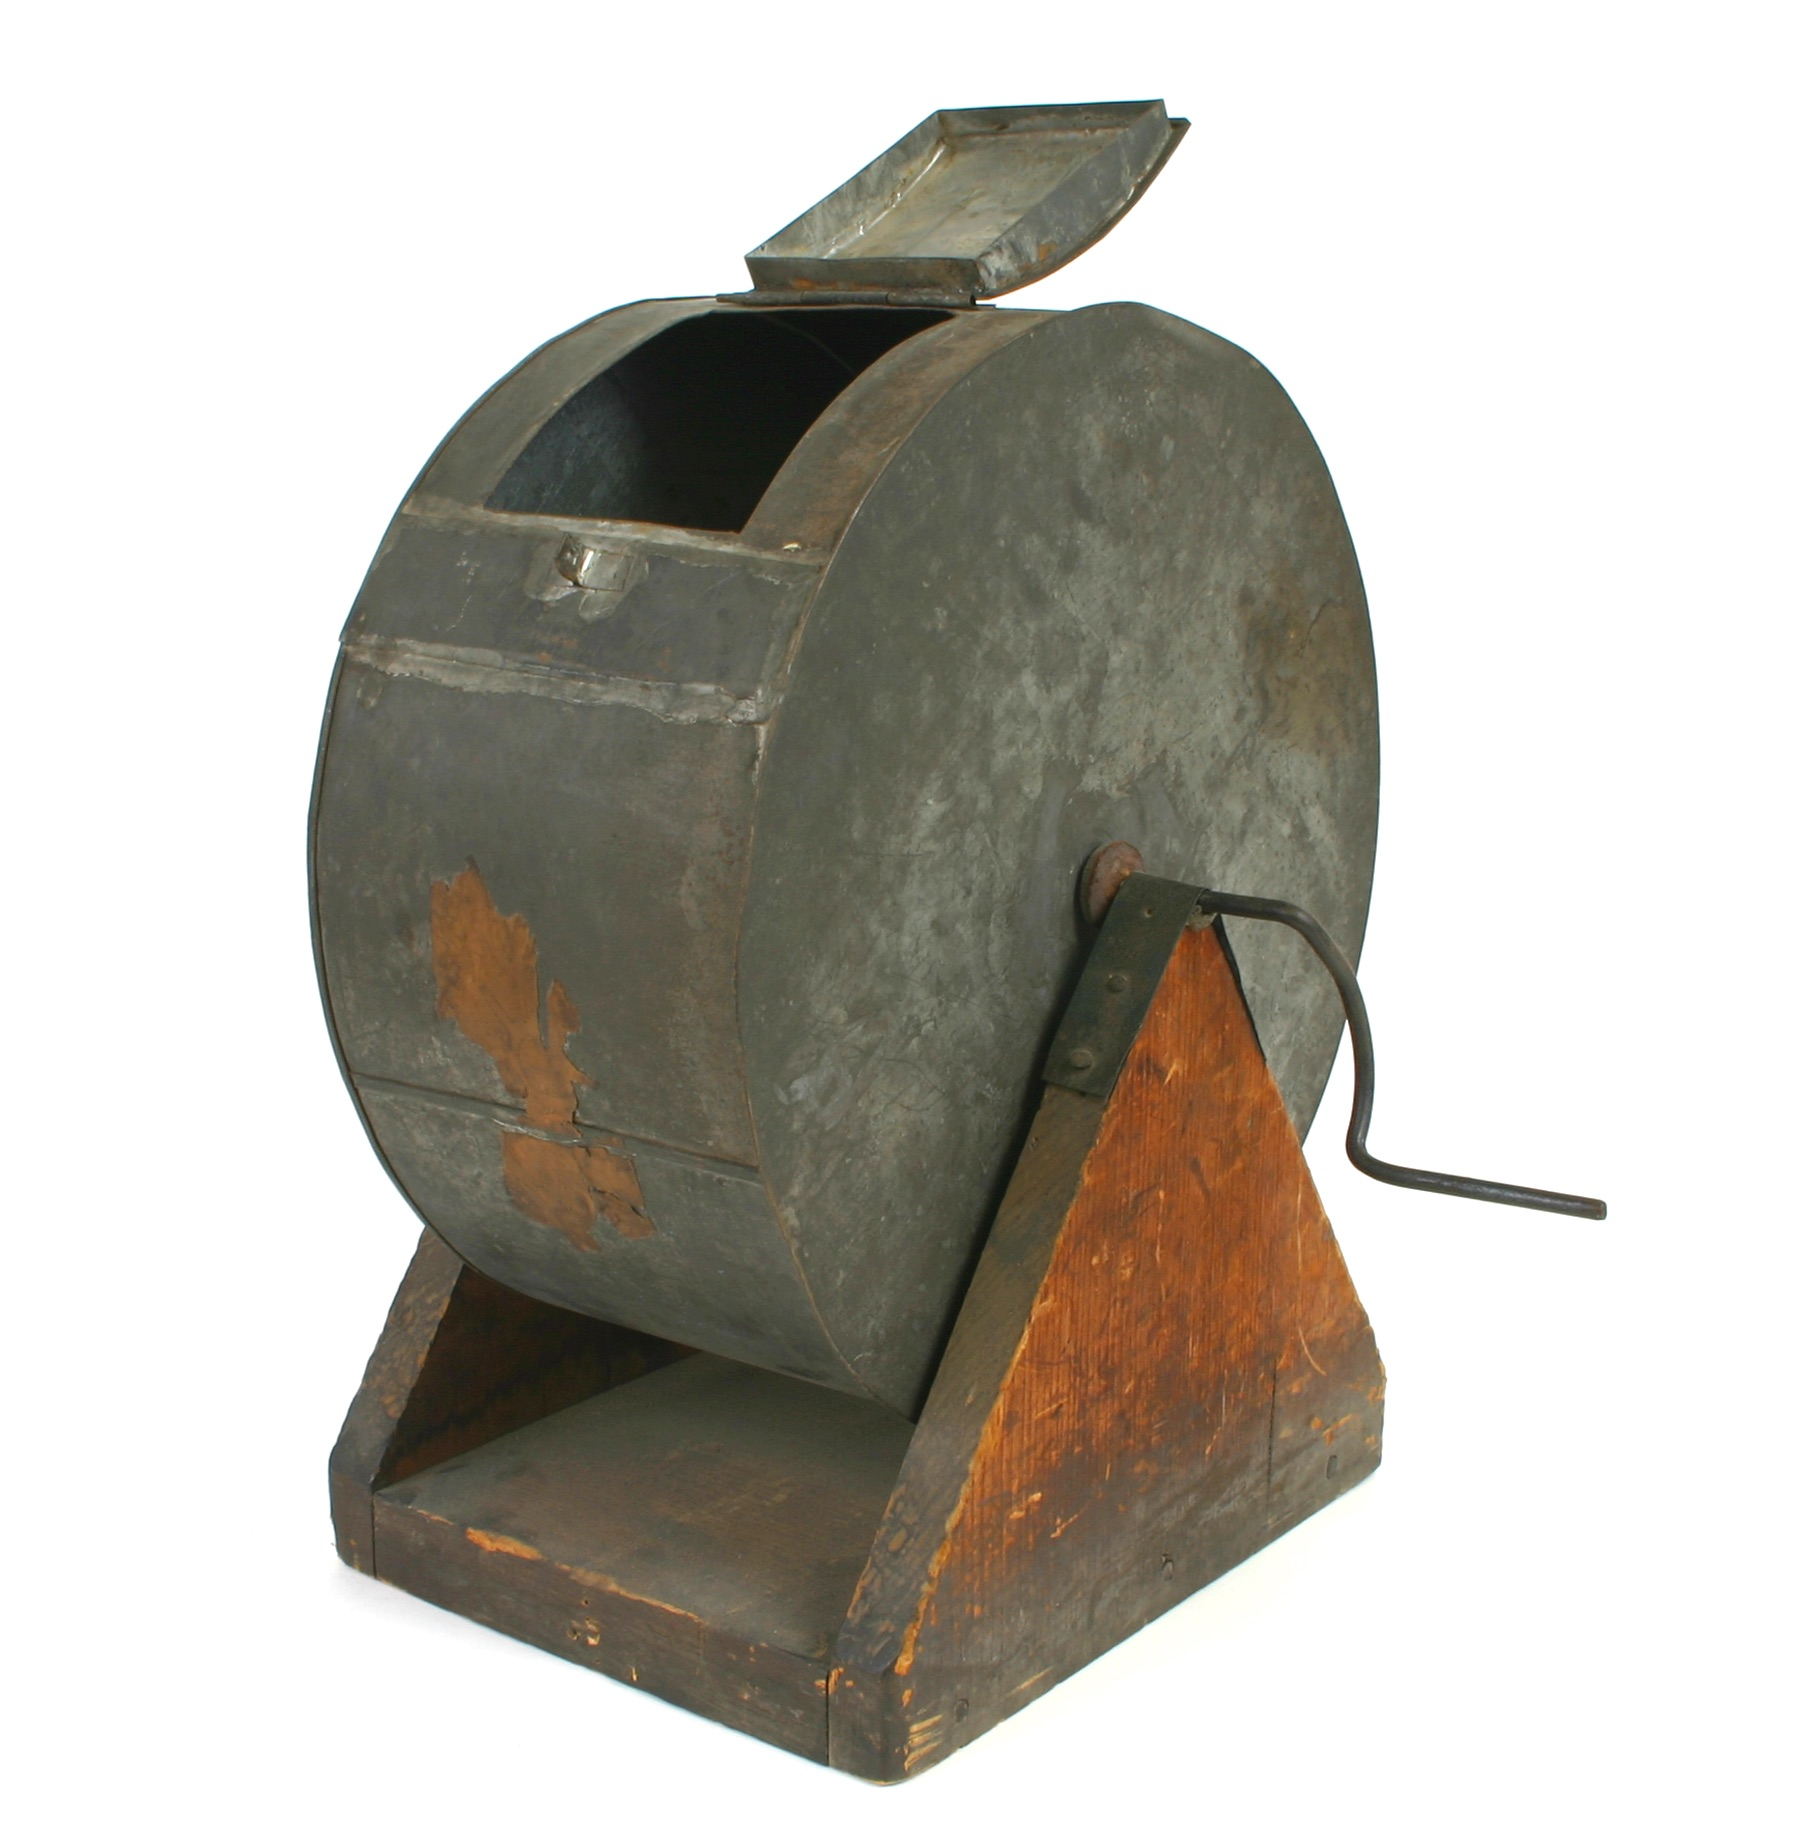 A metal cylinder with a handle for turning and a hatch for selecting items from within, on a stand